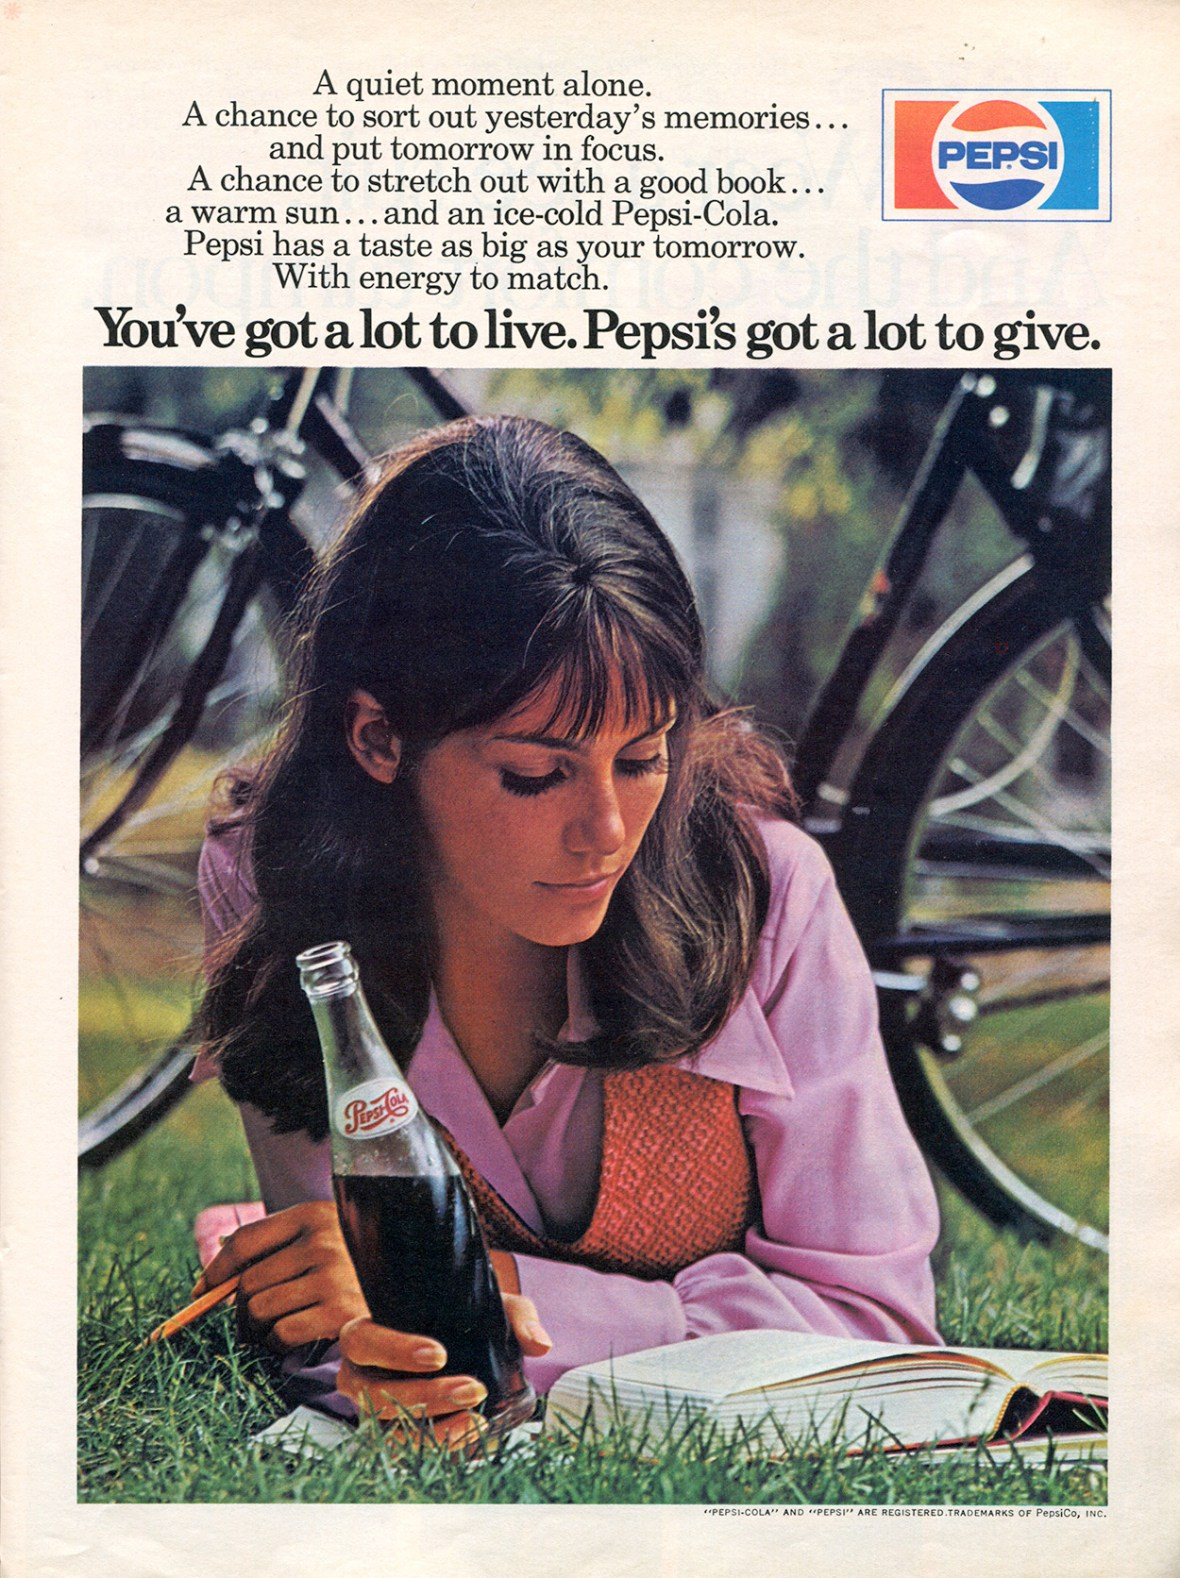 Pepsi-Cola - published in Teen - June 1971